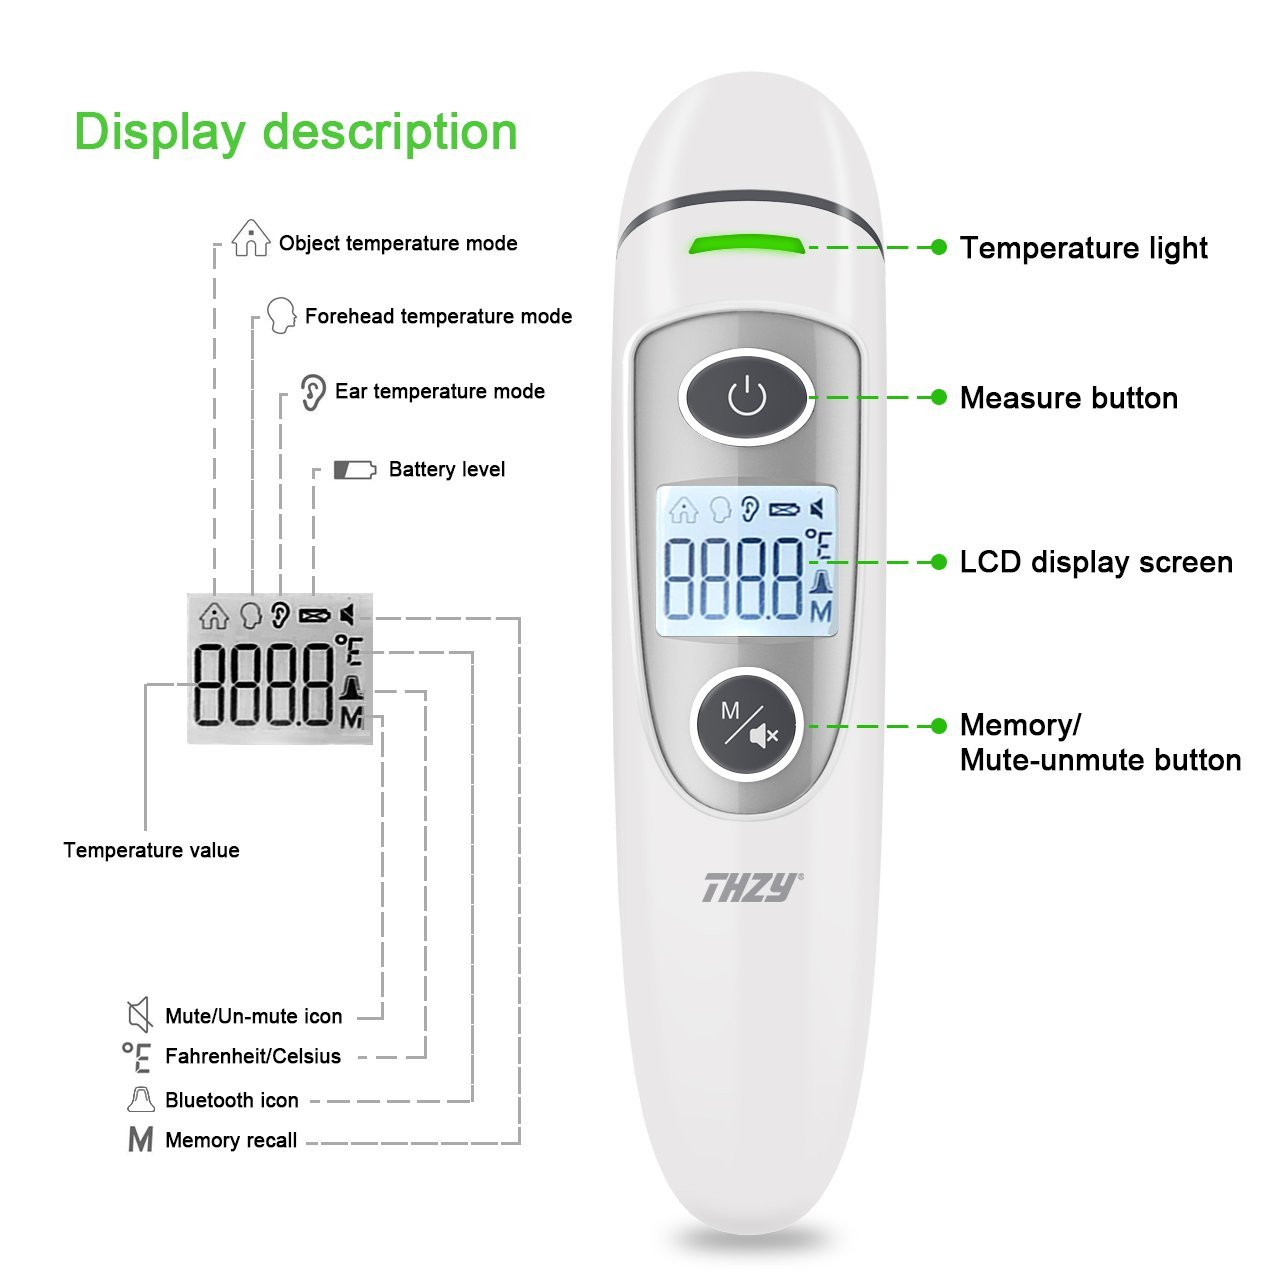 Forehead and Ear Thermometer, THZY Upgraded Digital Infrared Thermometer with Fever Indicator, Dual Mode Body Thermometer Suitable for Baby, Infants, Toddlers and Adult CE&FDA Approved by THZY (Image #4)